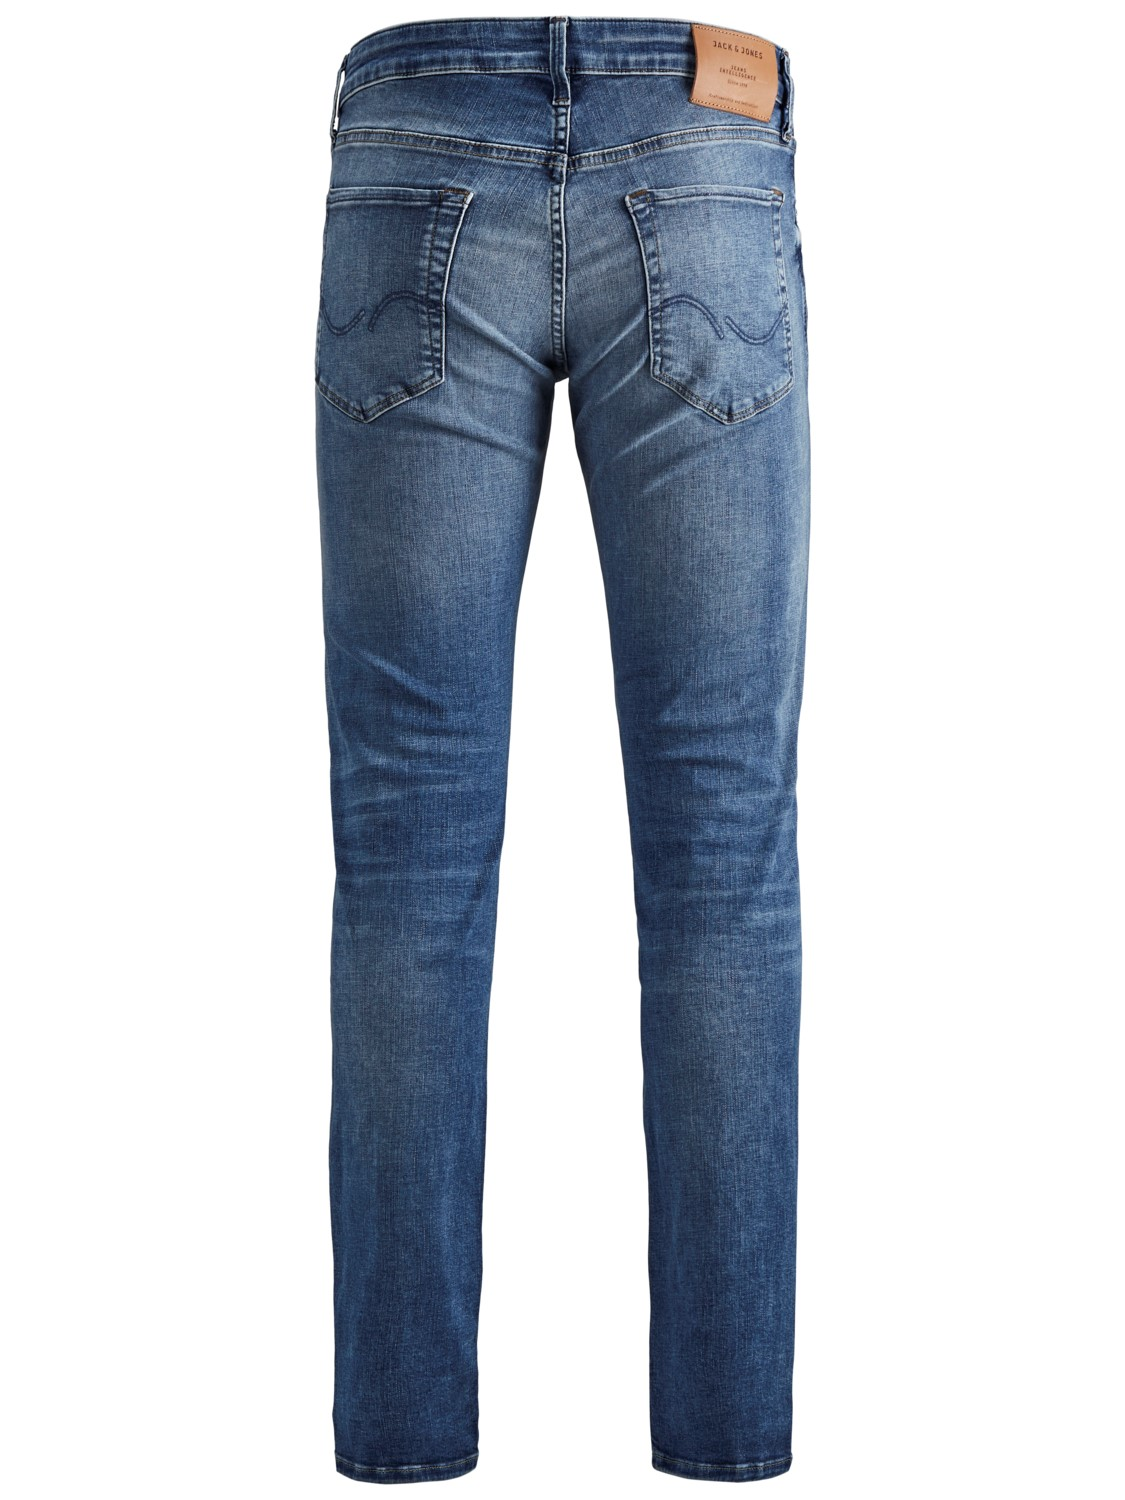 jack-jones-herren-jeans-jjiglenn-jjicon-jj-357-50sps-slim-fit-blau-blue-denim